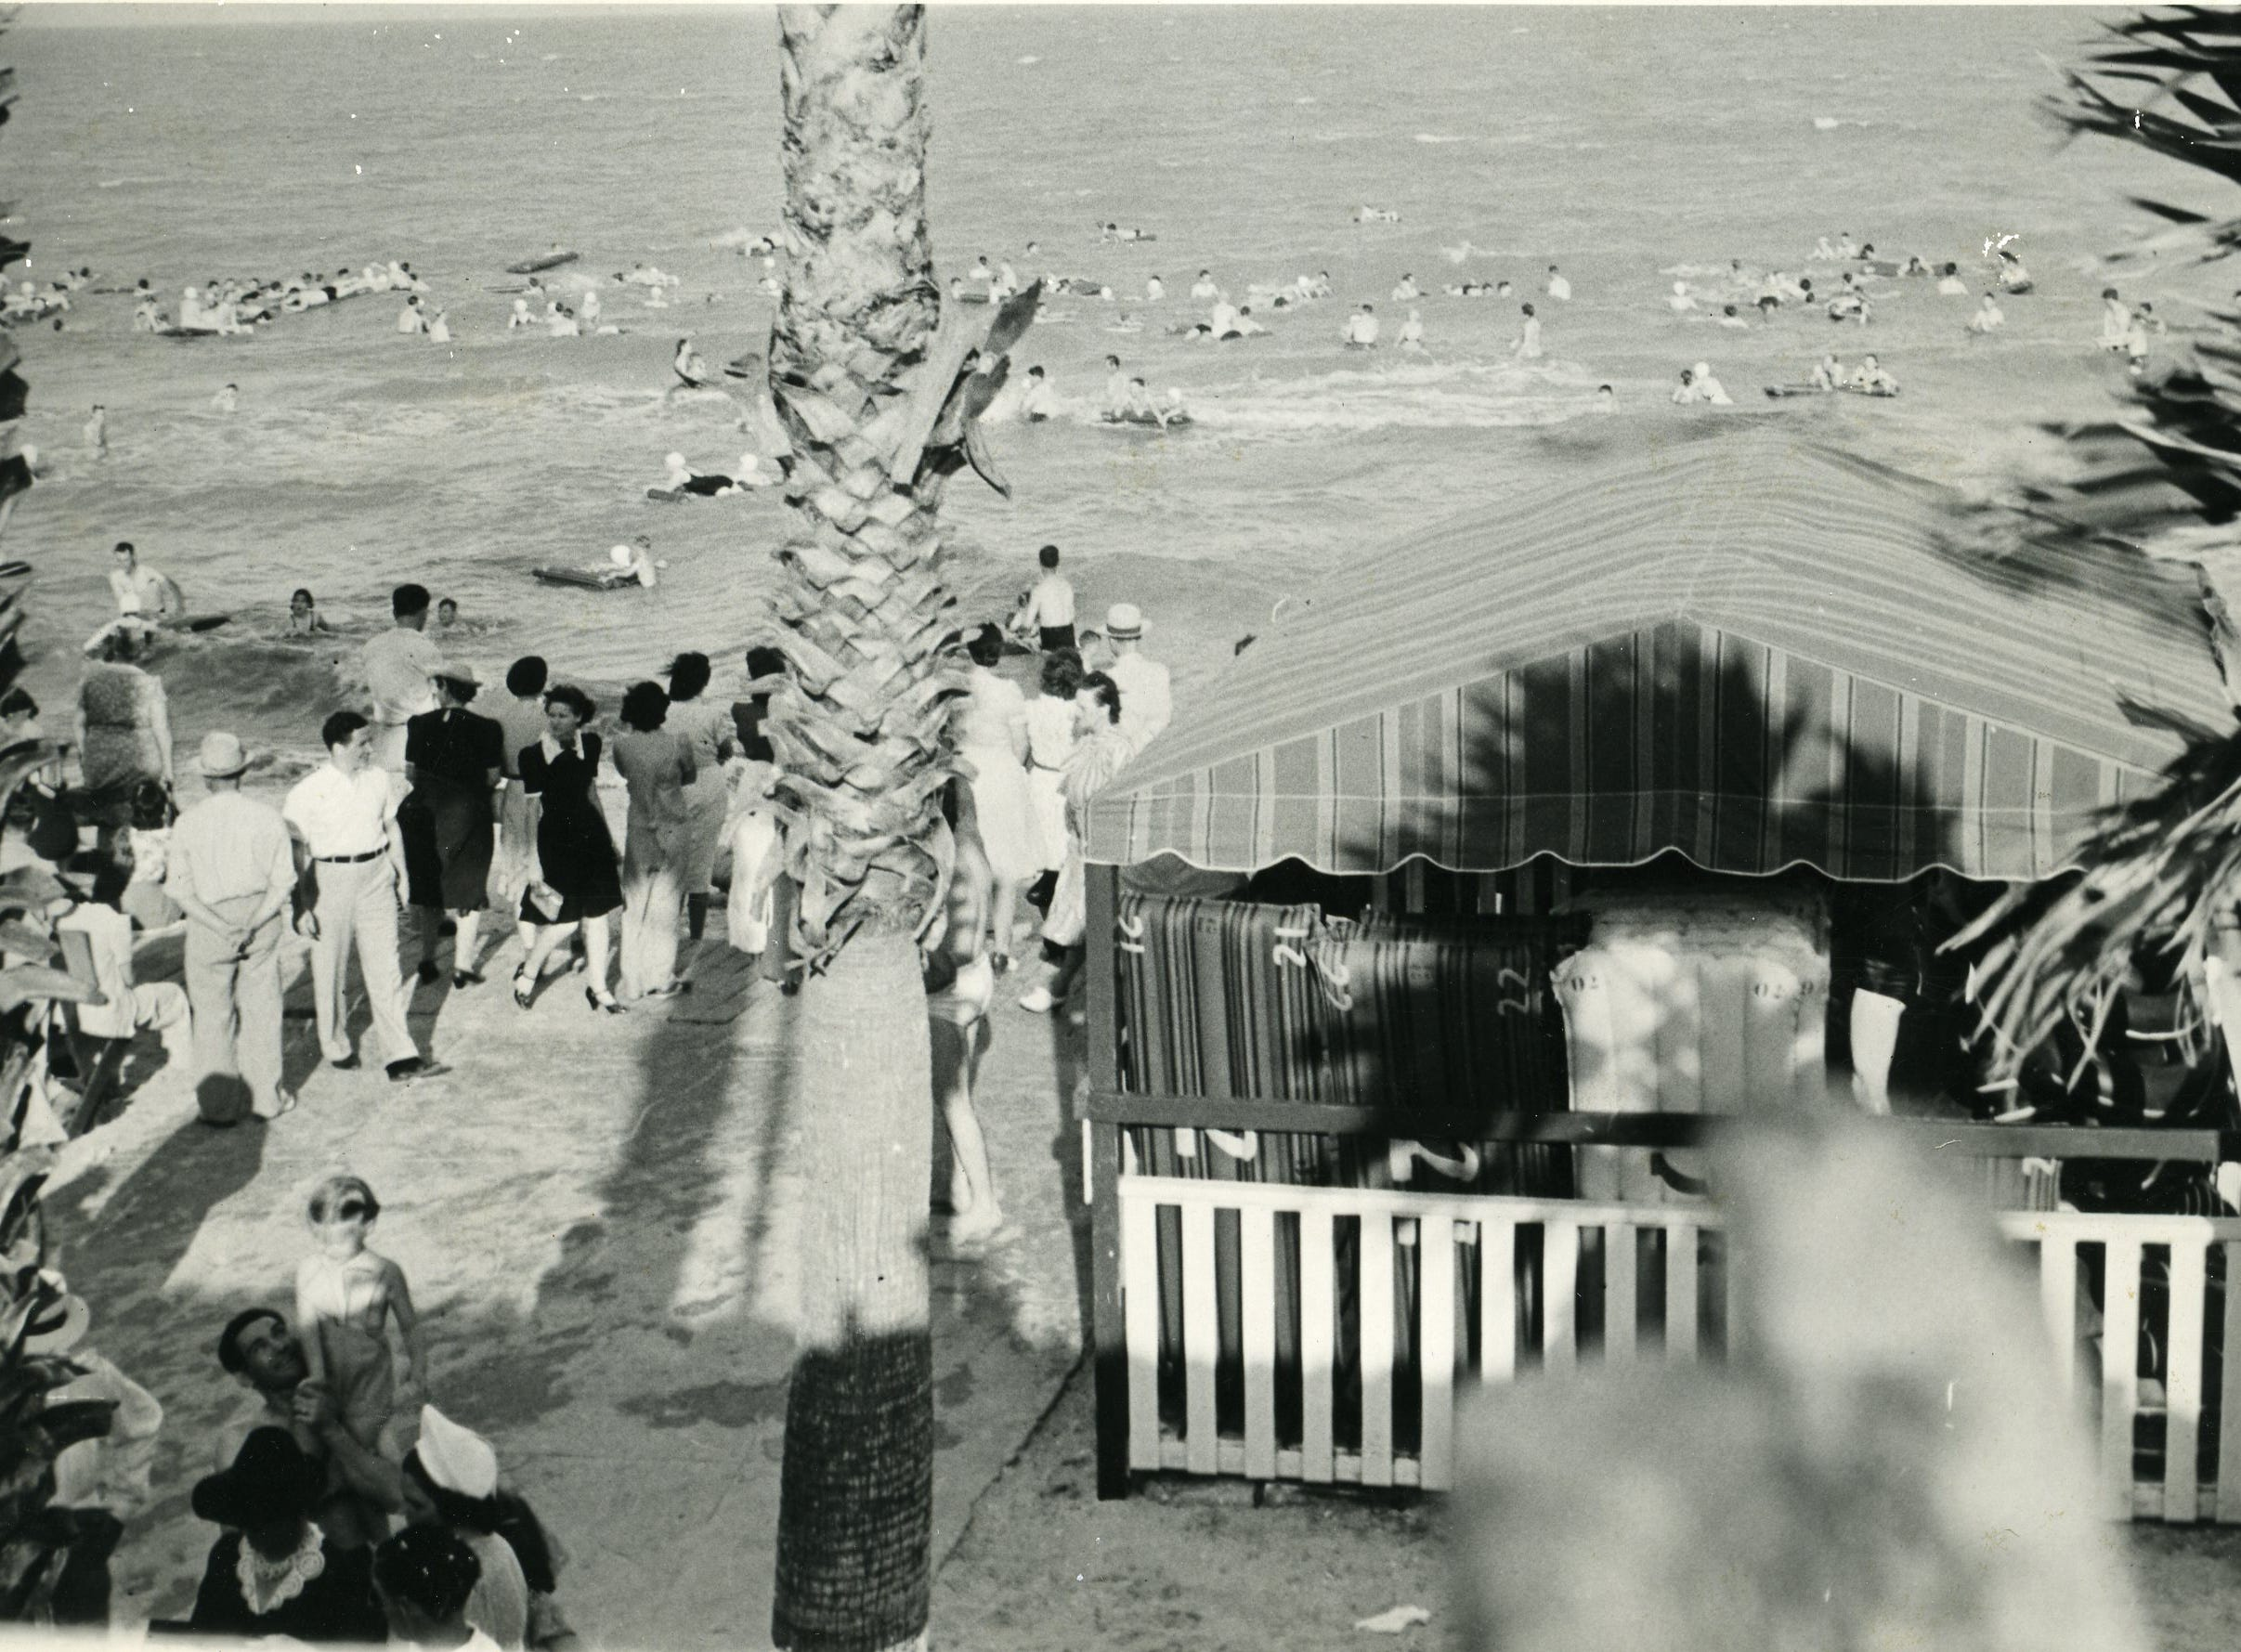 Crowds enjoy Corpus Christi's North Beach in 1941.